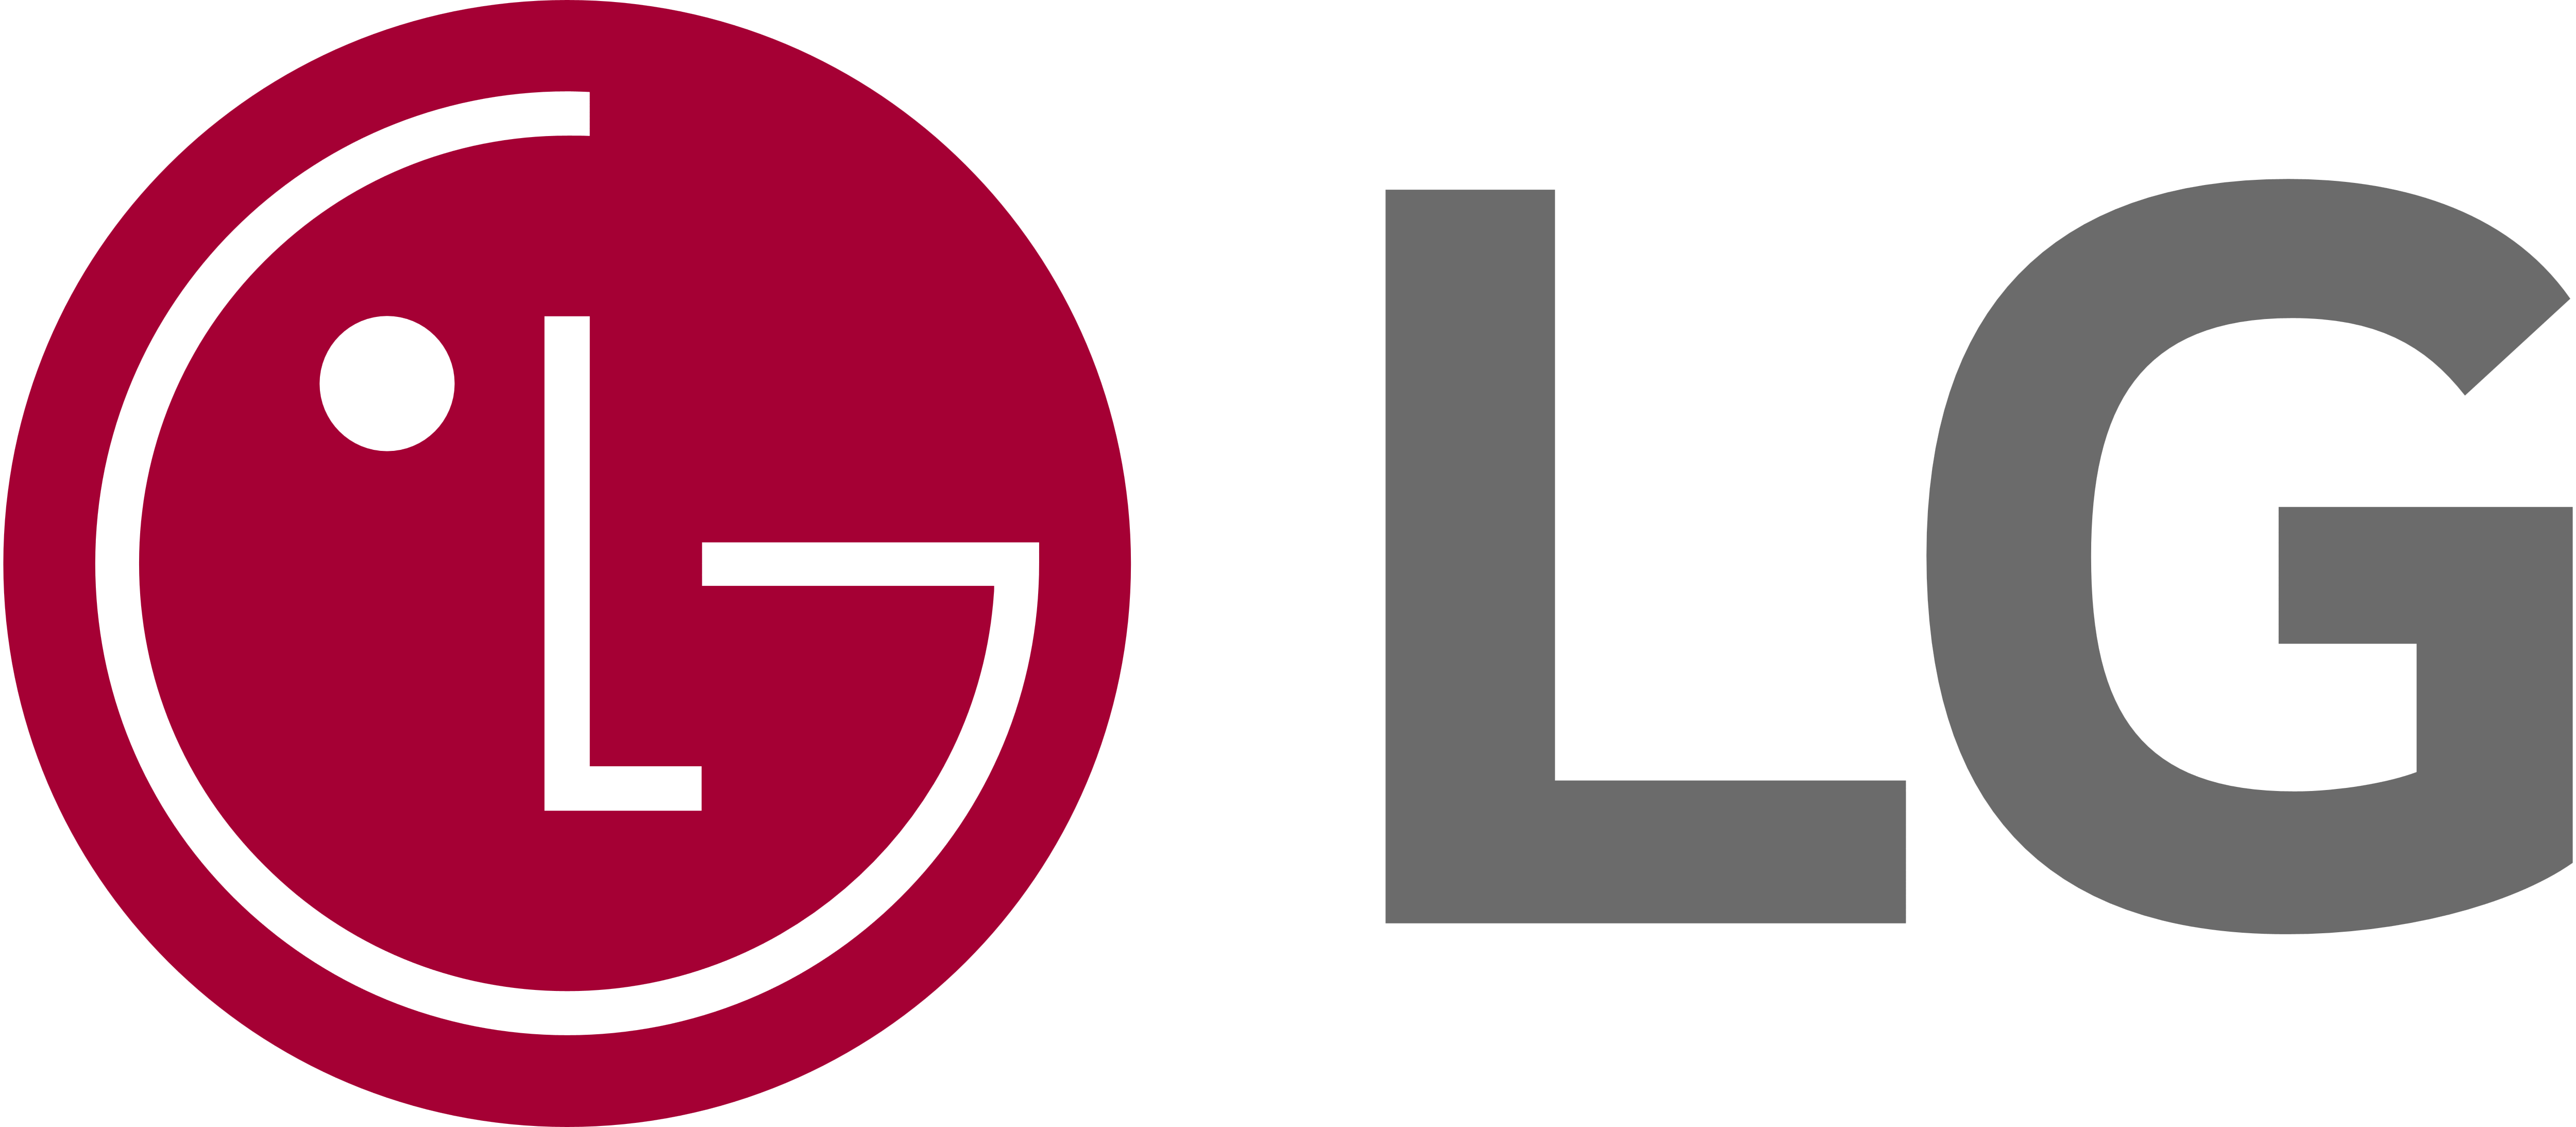 LG Repair Washer Near Me, LG Washer Repair